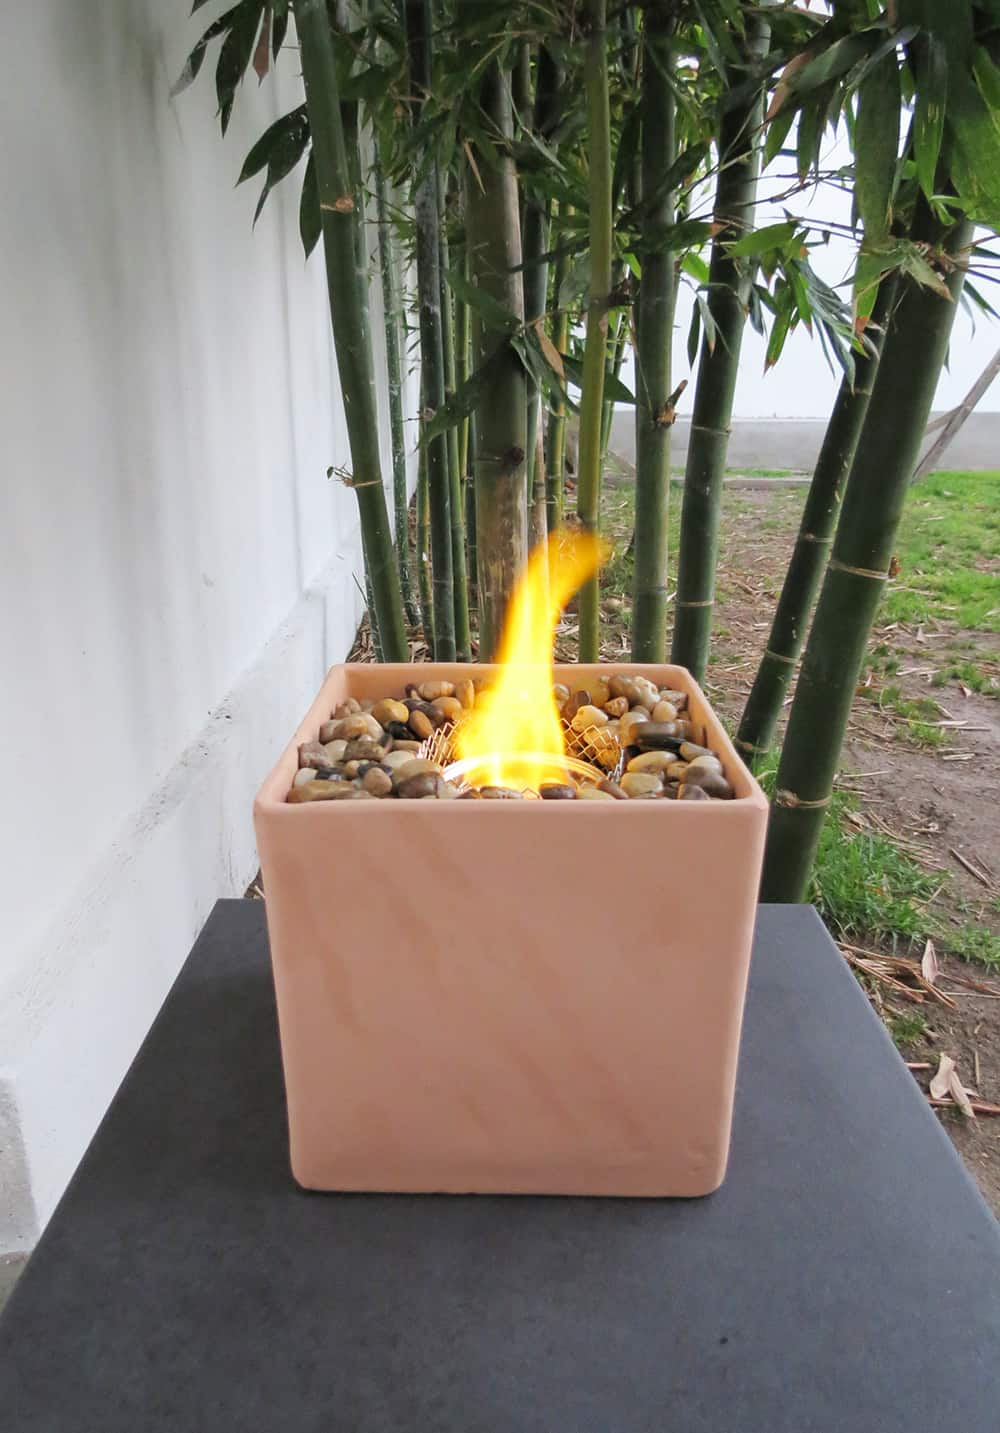 The easy way to make a table fire pit ohoh blog for Easy way to build a fire pit